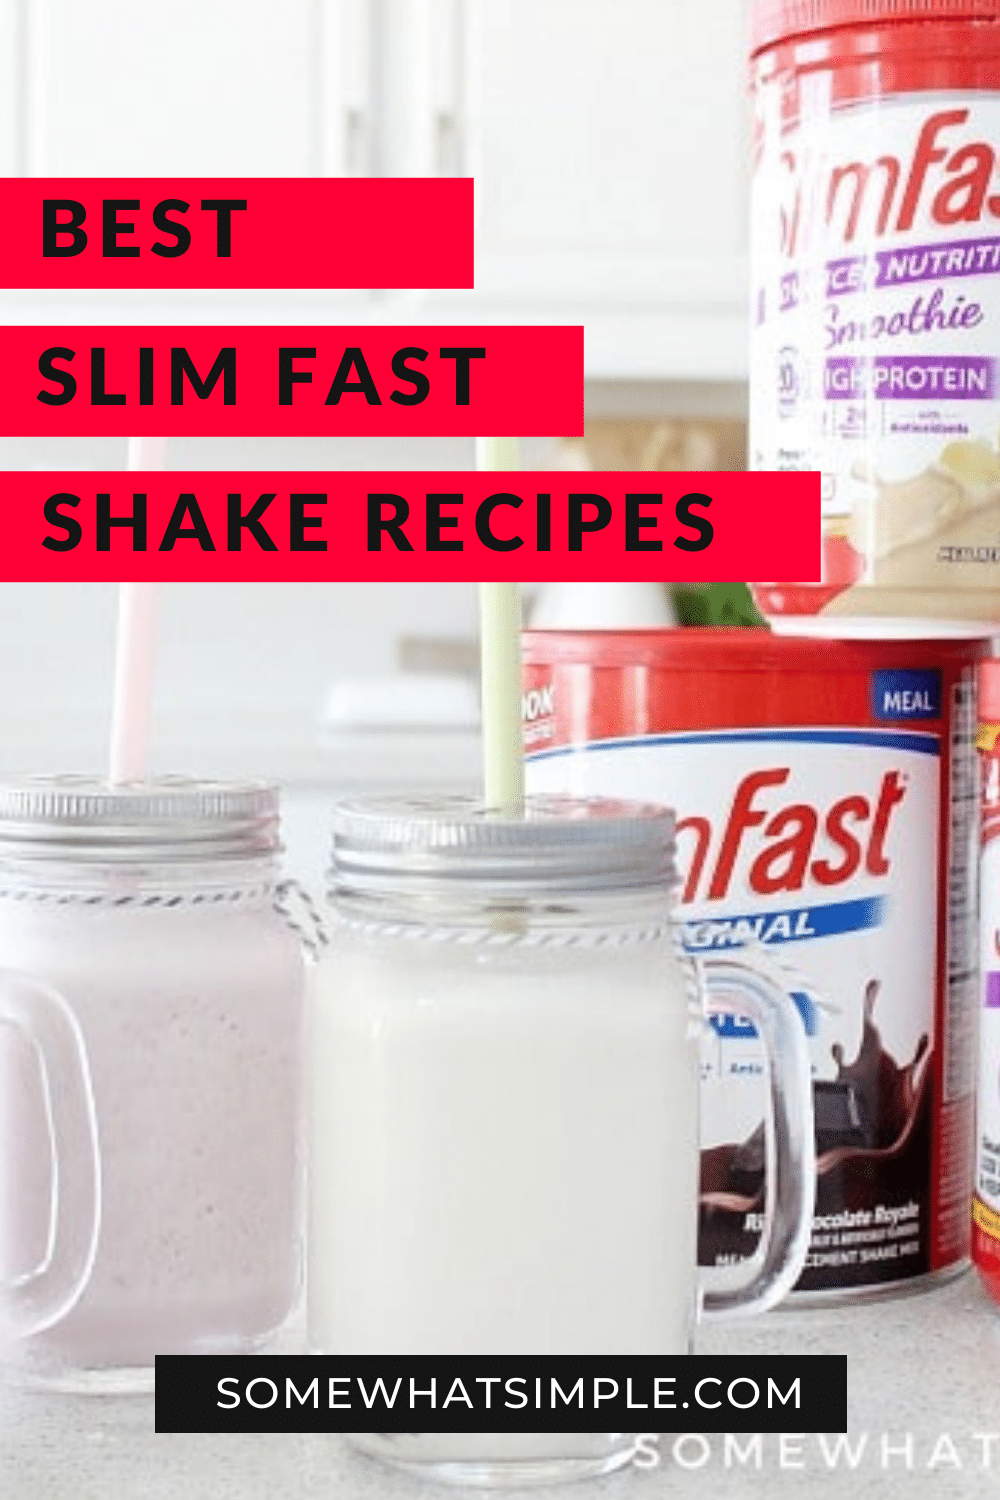 Slim Fast Shakes and smoothies are the best way to start your morning. This delicious recipe will make this healthy and convenient breakfast even better! These are ready in just minutes, so your morning routine is about to get a whole lot better! via @somewhatsimple